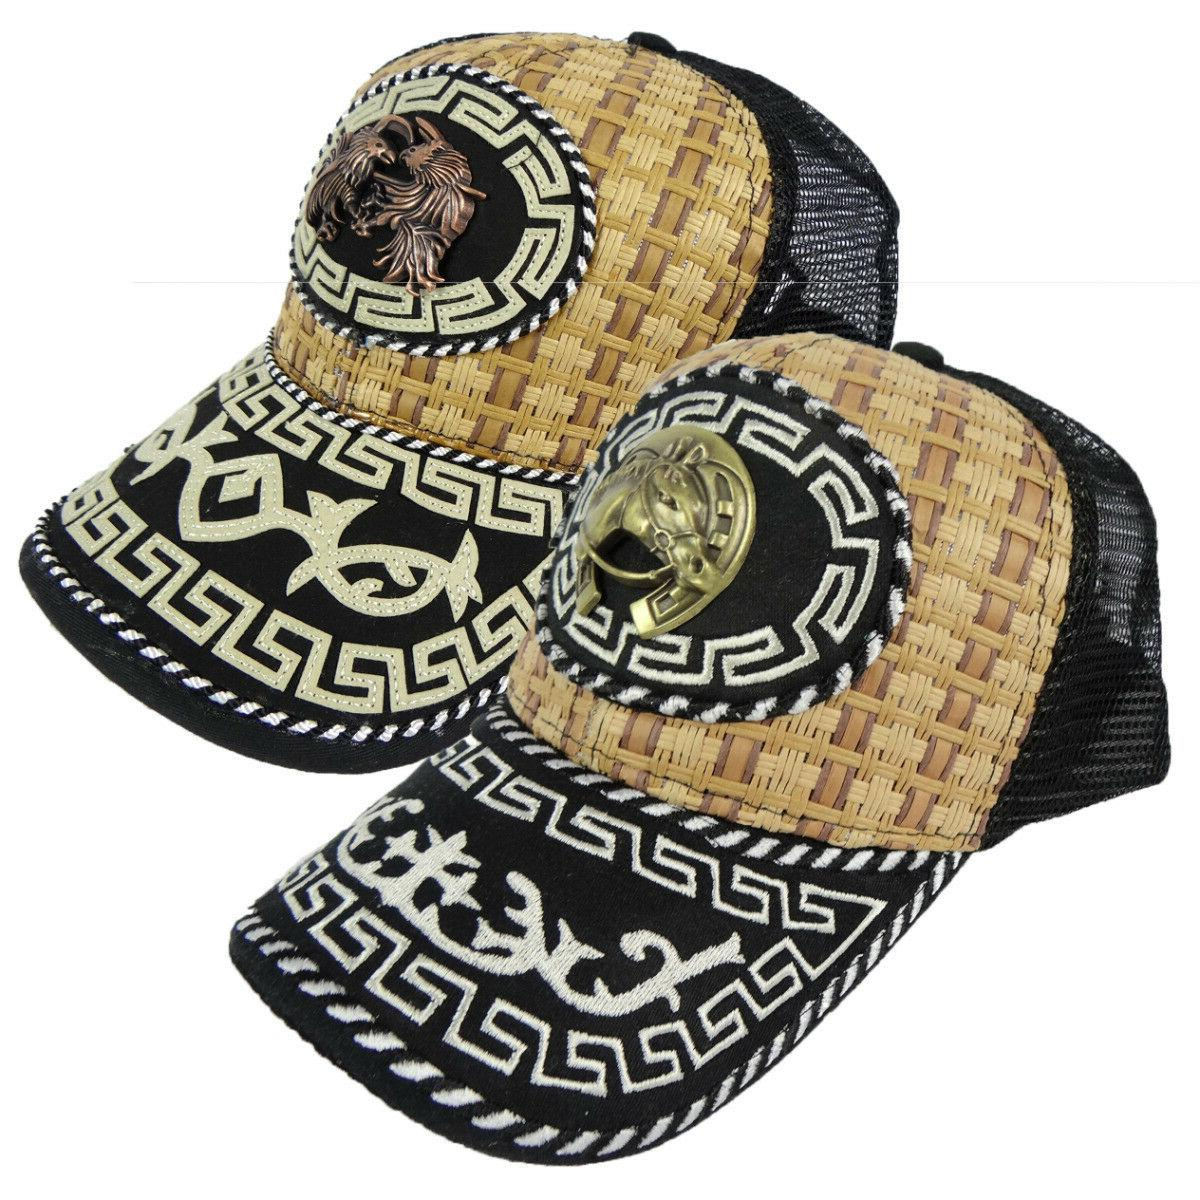 Western Cowboy Style Hat Snapback Trucker Embroidered Metal